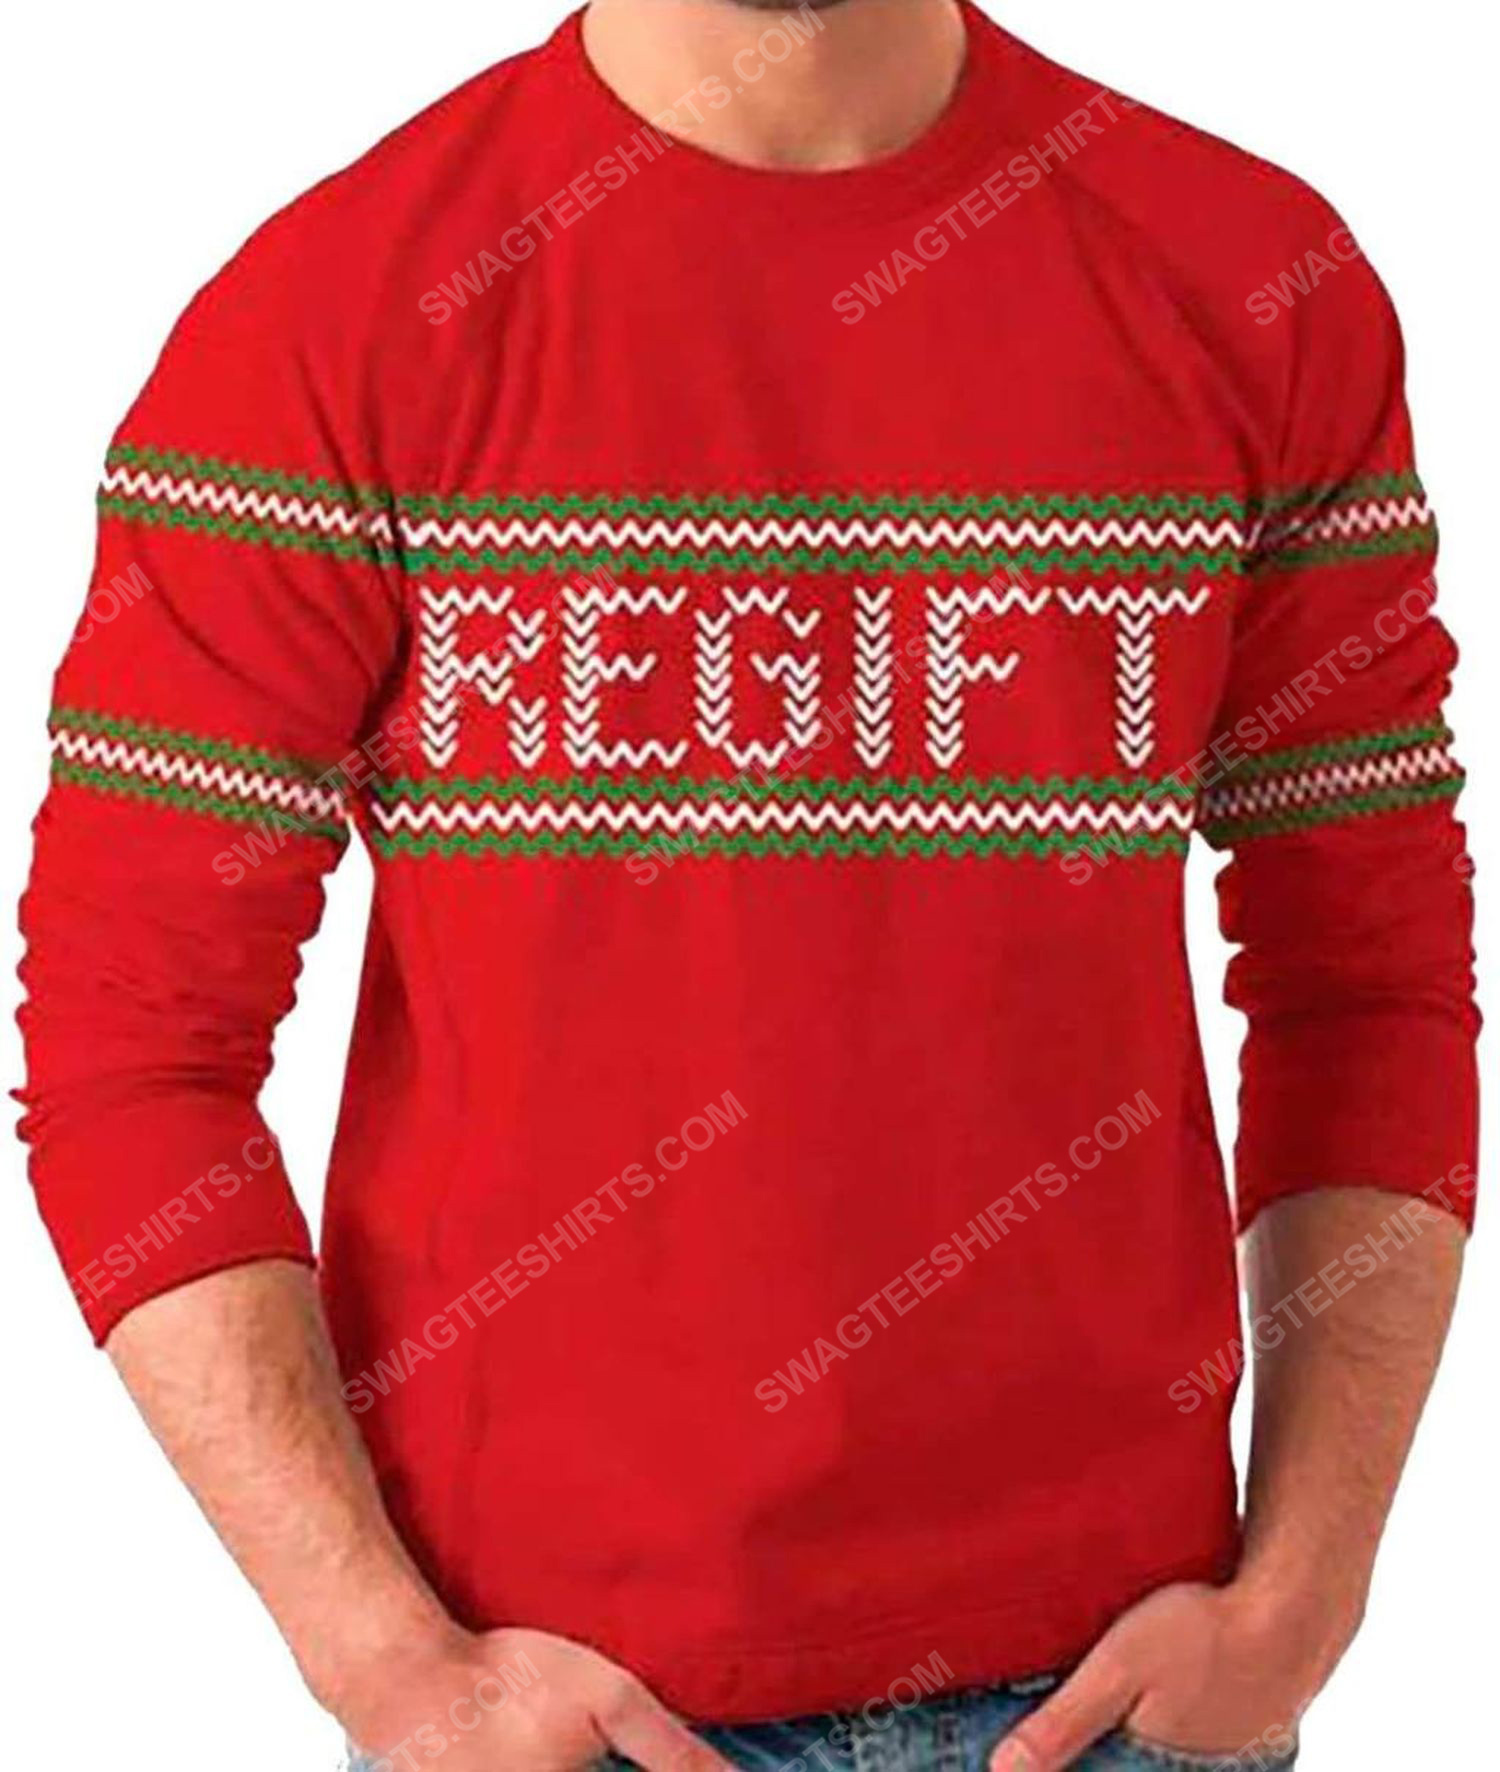 Holiday present regift full print ugly christmas sweater 2 - Copy